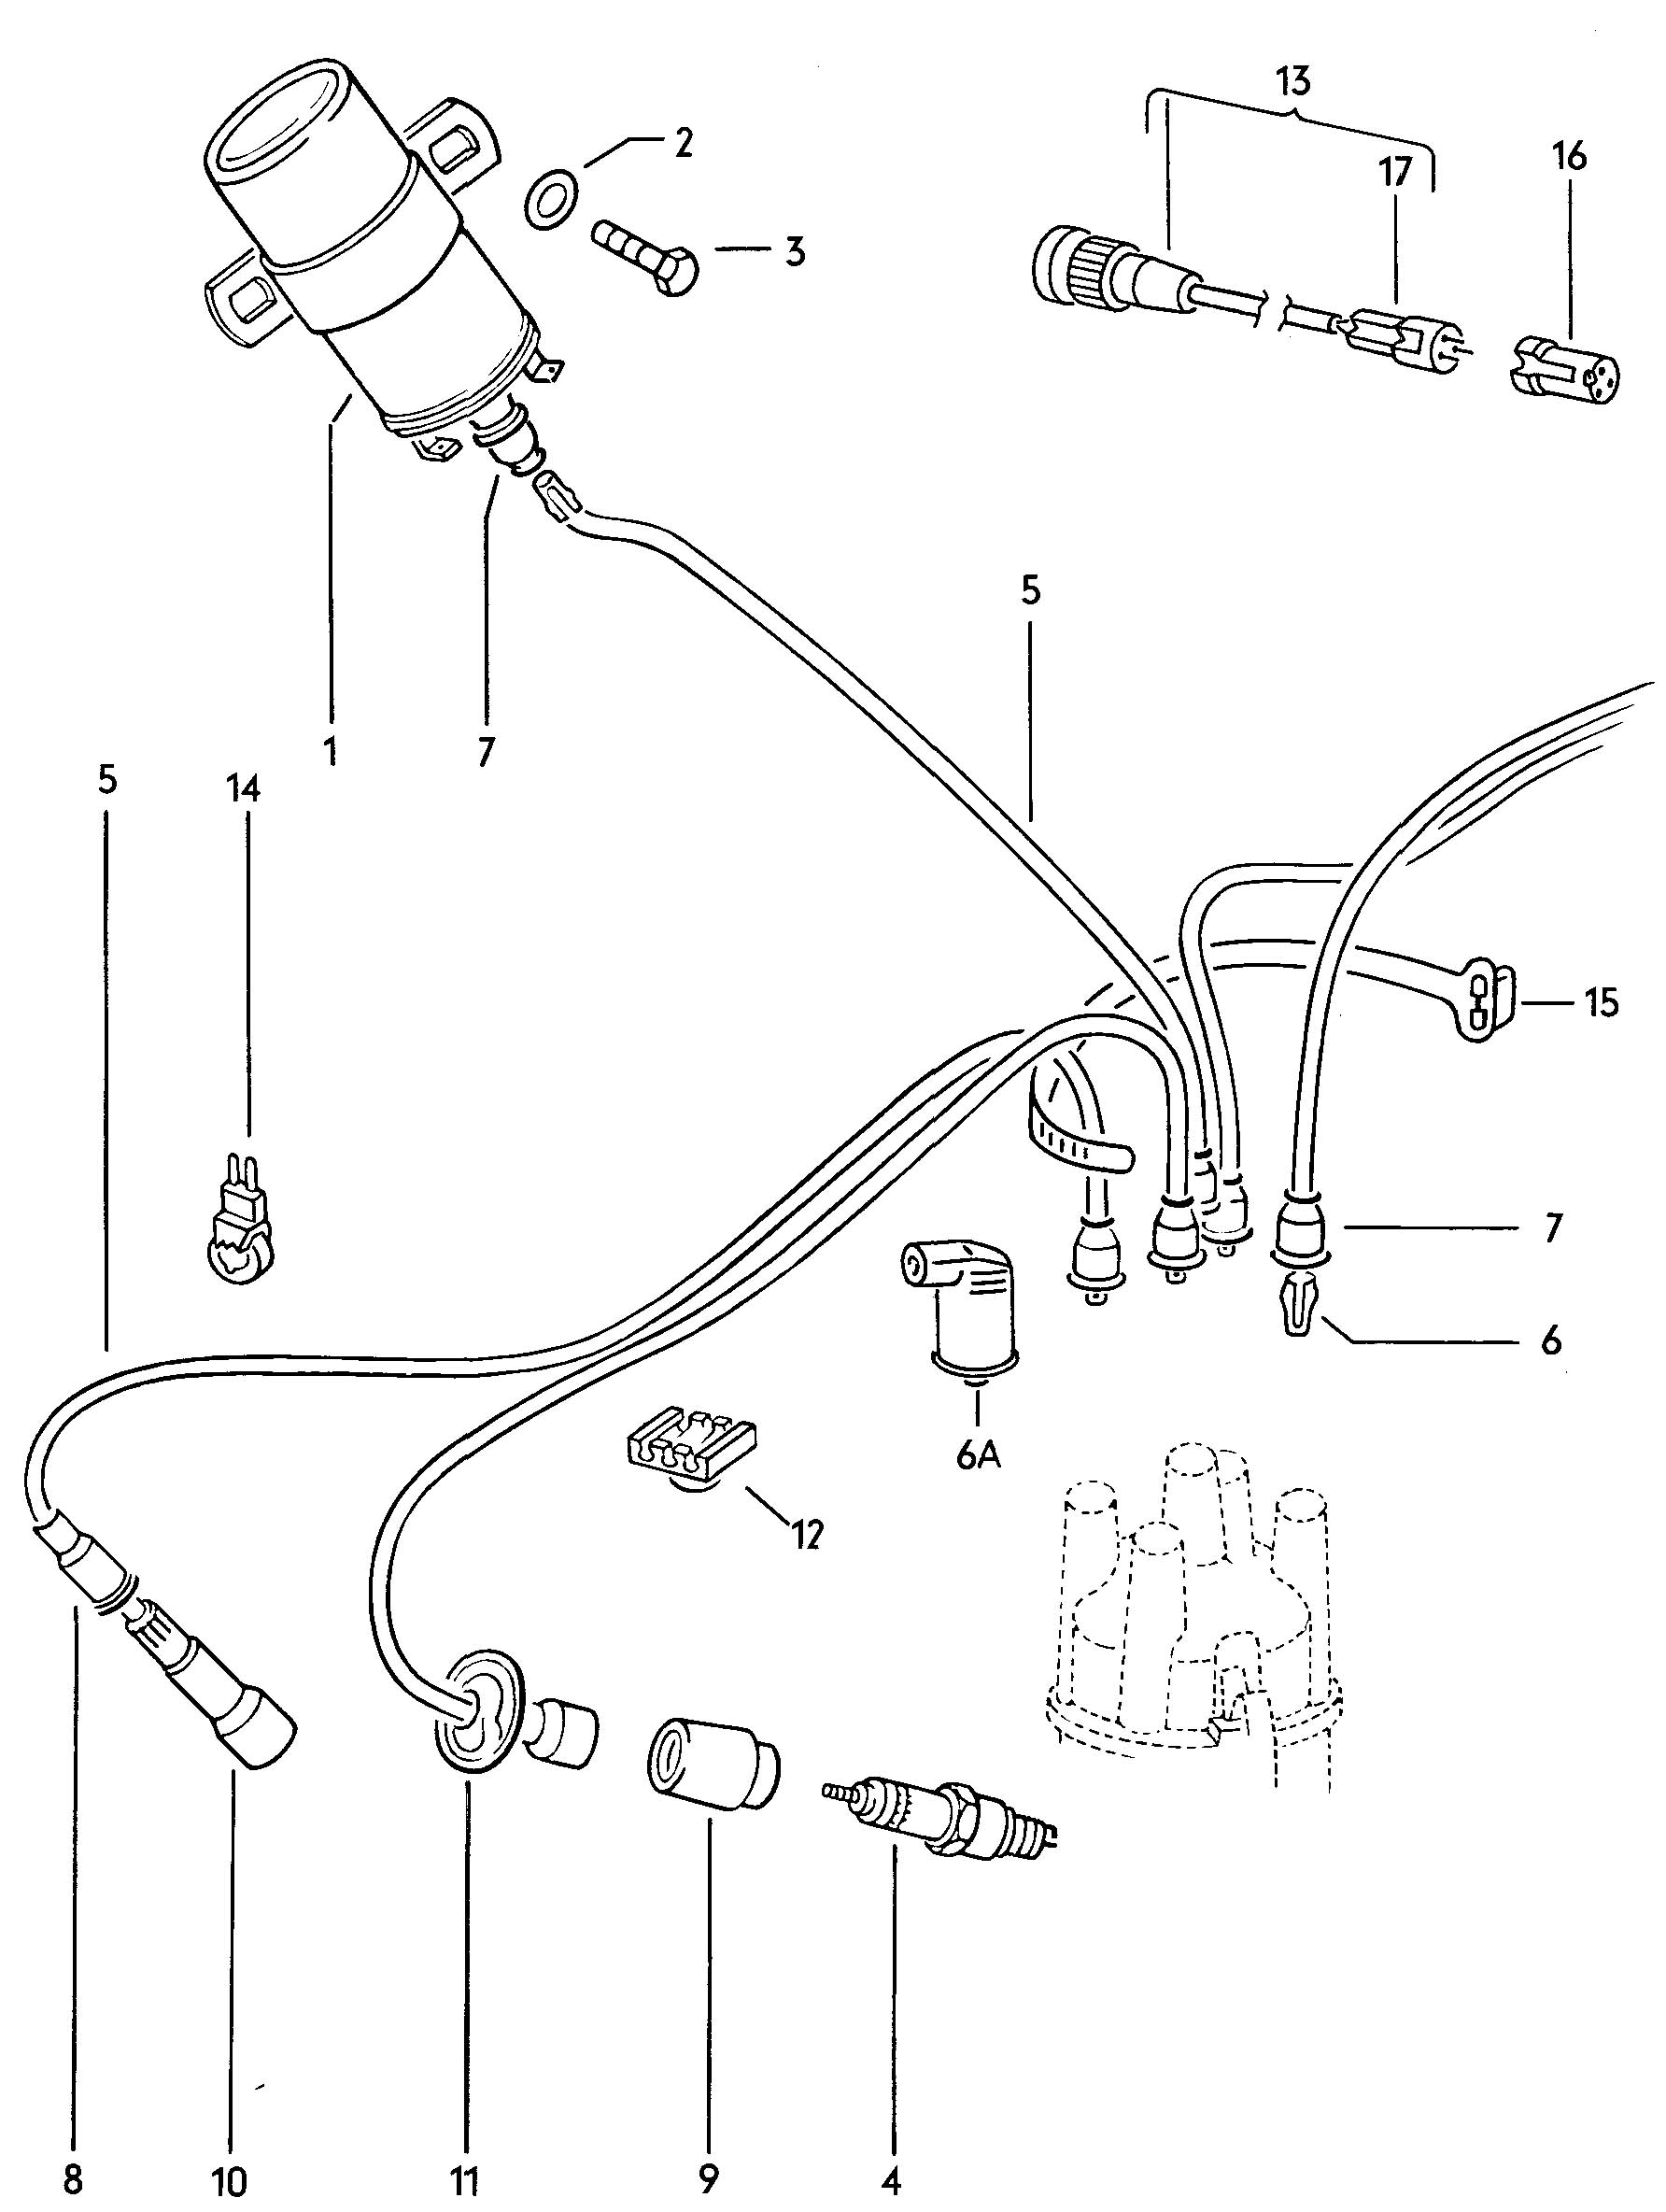 Vw Coil Wiring Diagram Data Volkswagen Beetle Fuse 73 Bug Detailed Air Cooled 1974